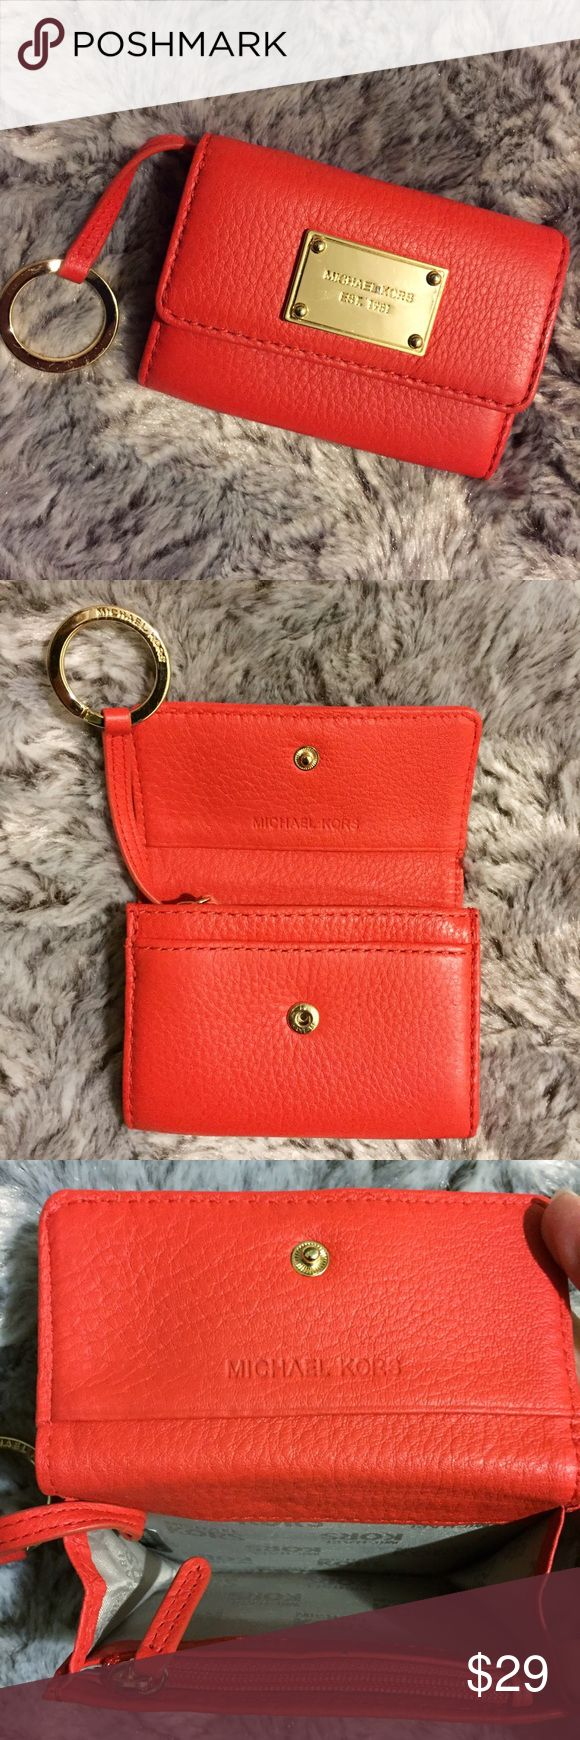 Michael Kors Leather Keychain Wallet Pre-loved in great condition. Only signs of wear are scratches on the front gold metal plate. There is also a mark between Michael & Kors on the metal plate. This wallet comes in a gorgeous red orange color. Interior has a small zippered pouch for change, as well as credit card slots. Some scratches on the metal keychain hook. Hook easily folds inside if you don't want your keys dangling outside of the wallet. Perfect size if you are traveling light! No…